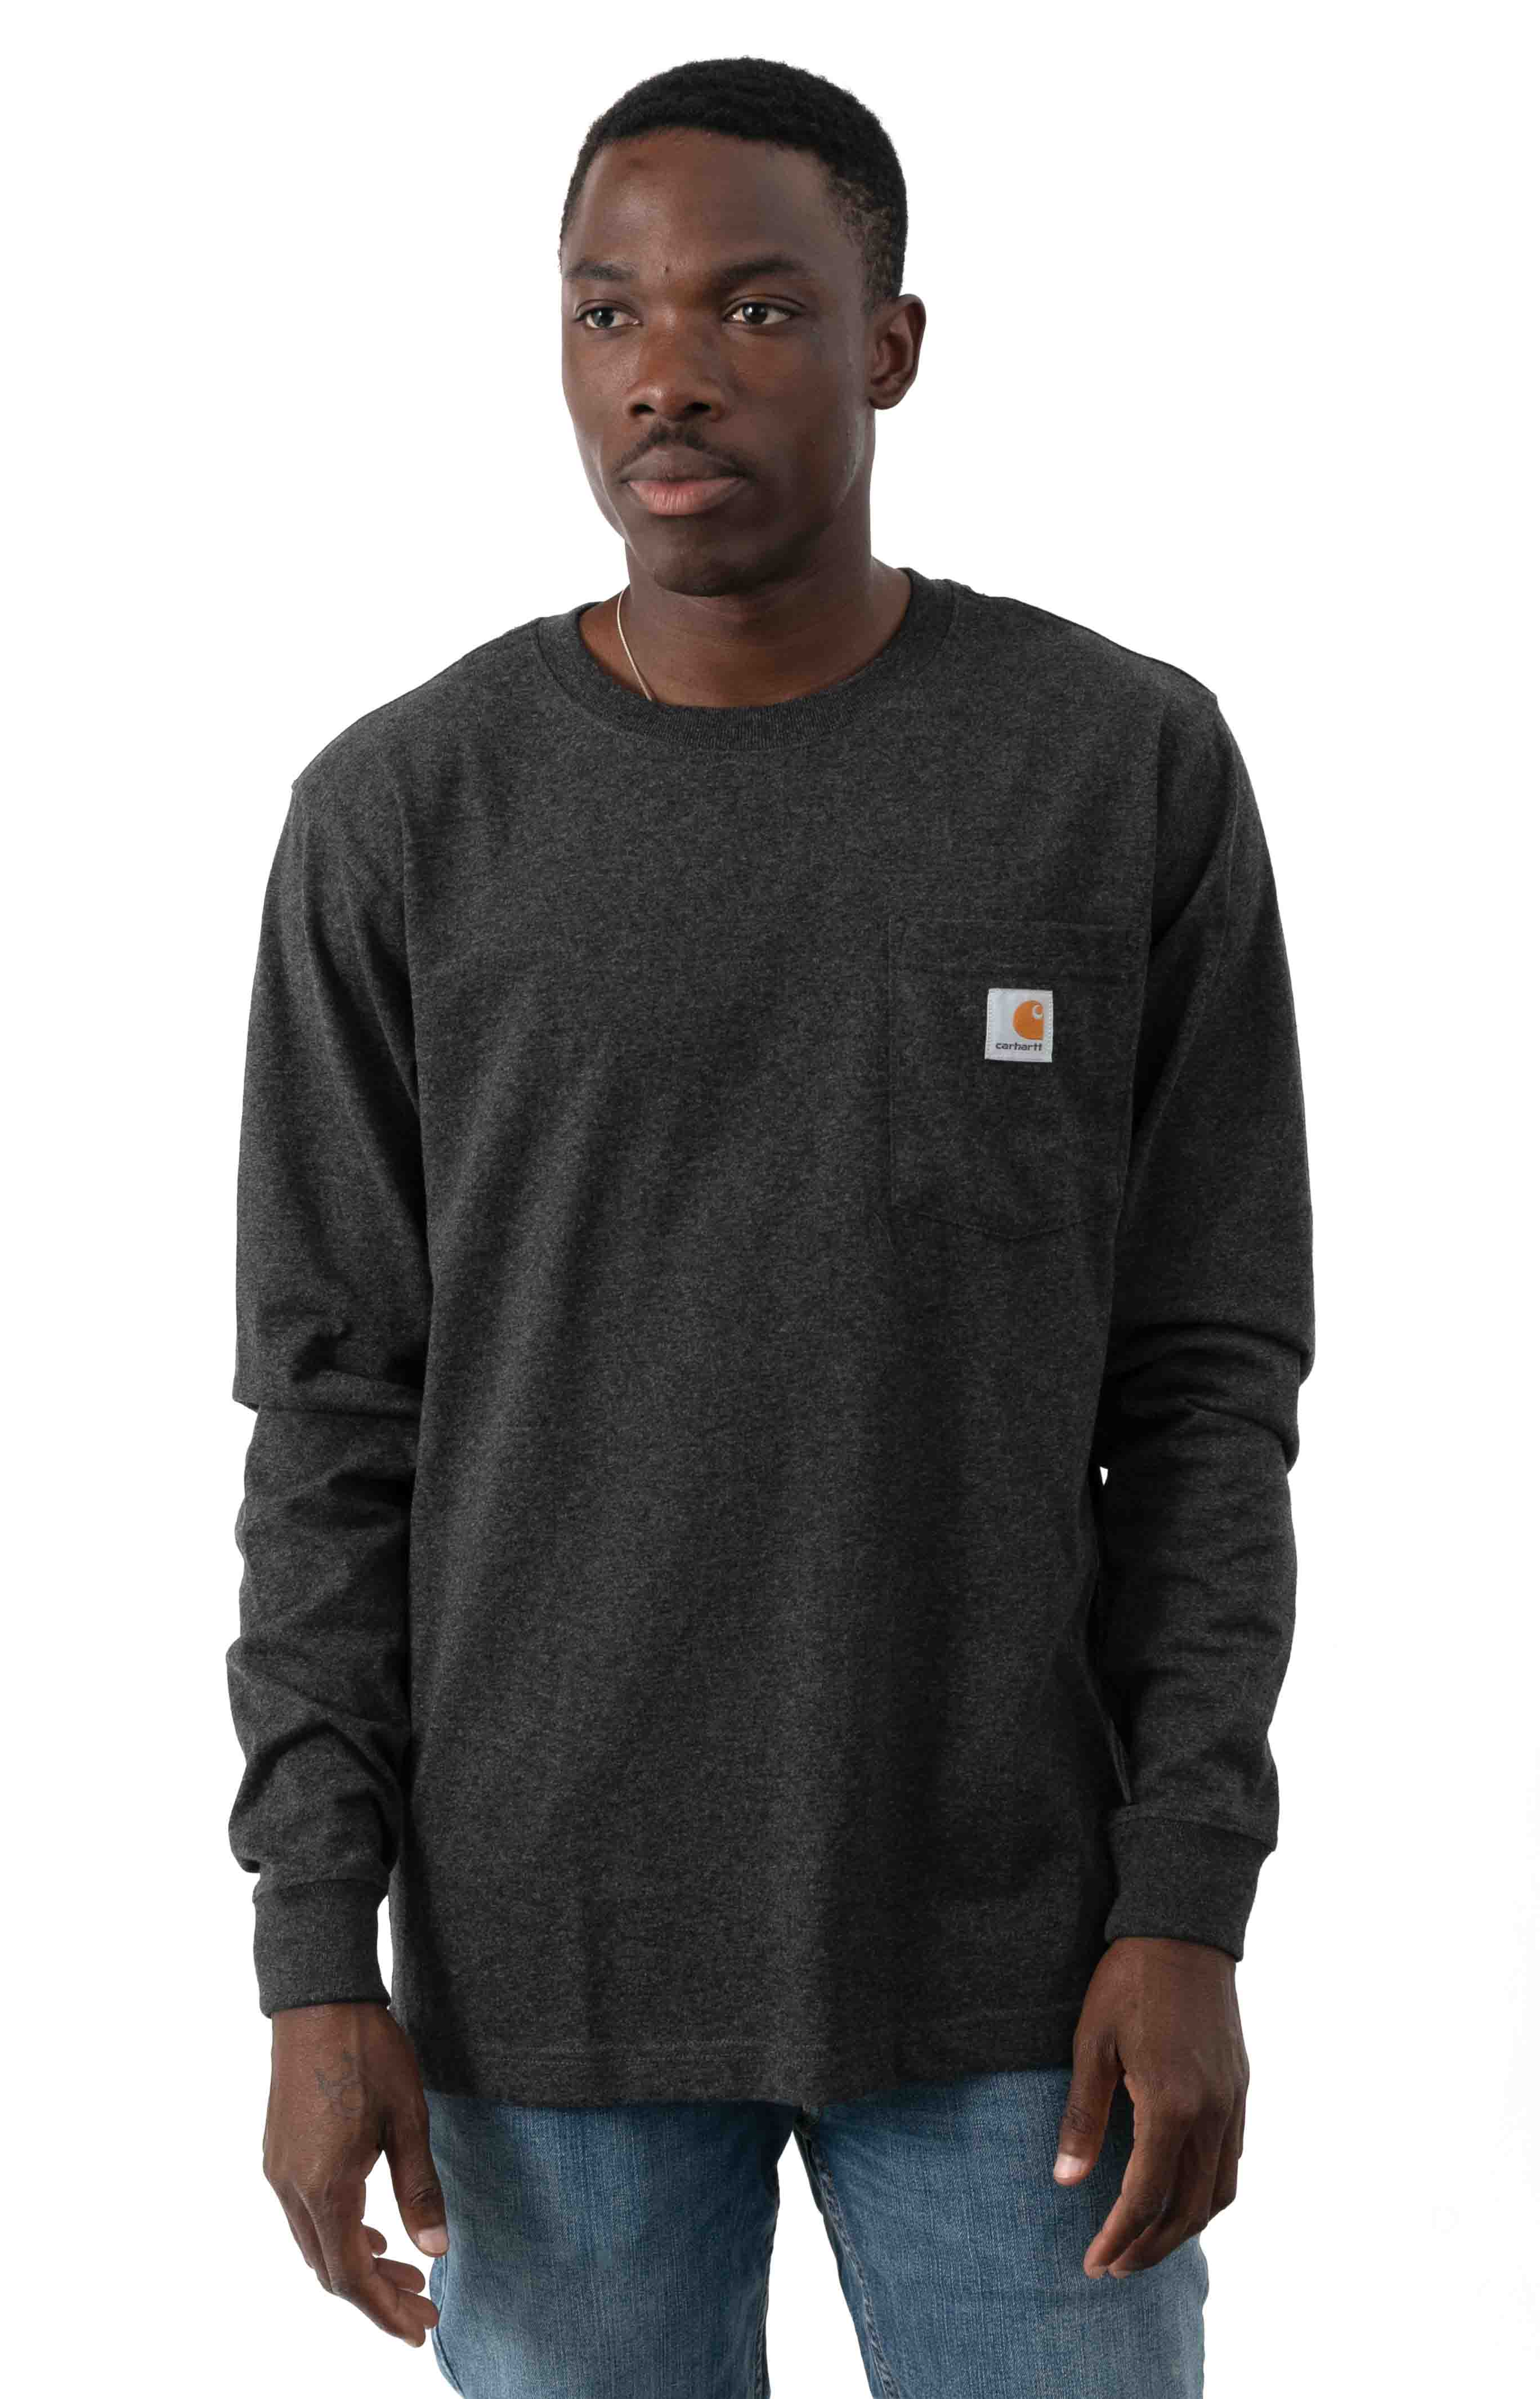 (104438) Relaxed Fit HW L/S Pocket Built For The Elements Graphic Shirt - Carbon Heather  2